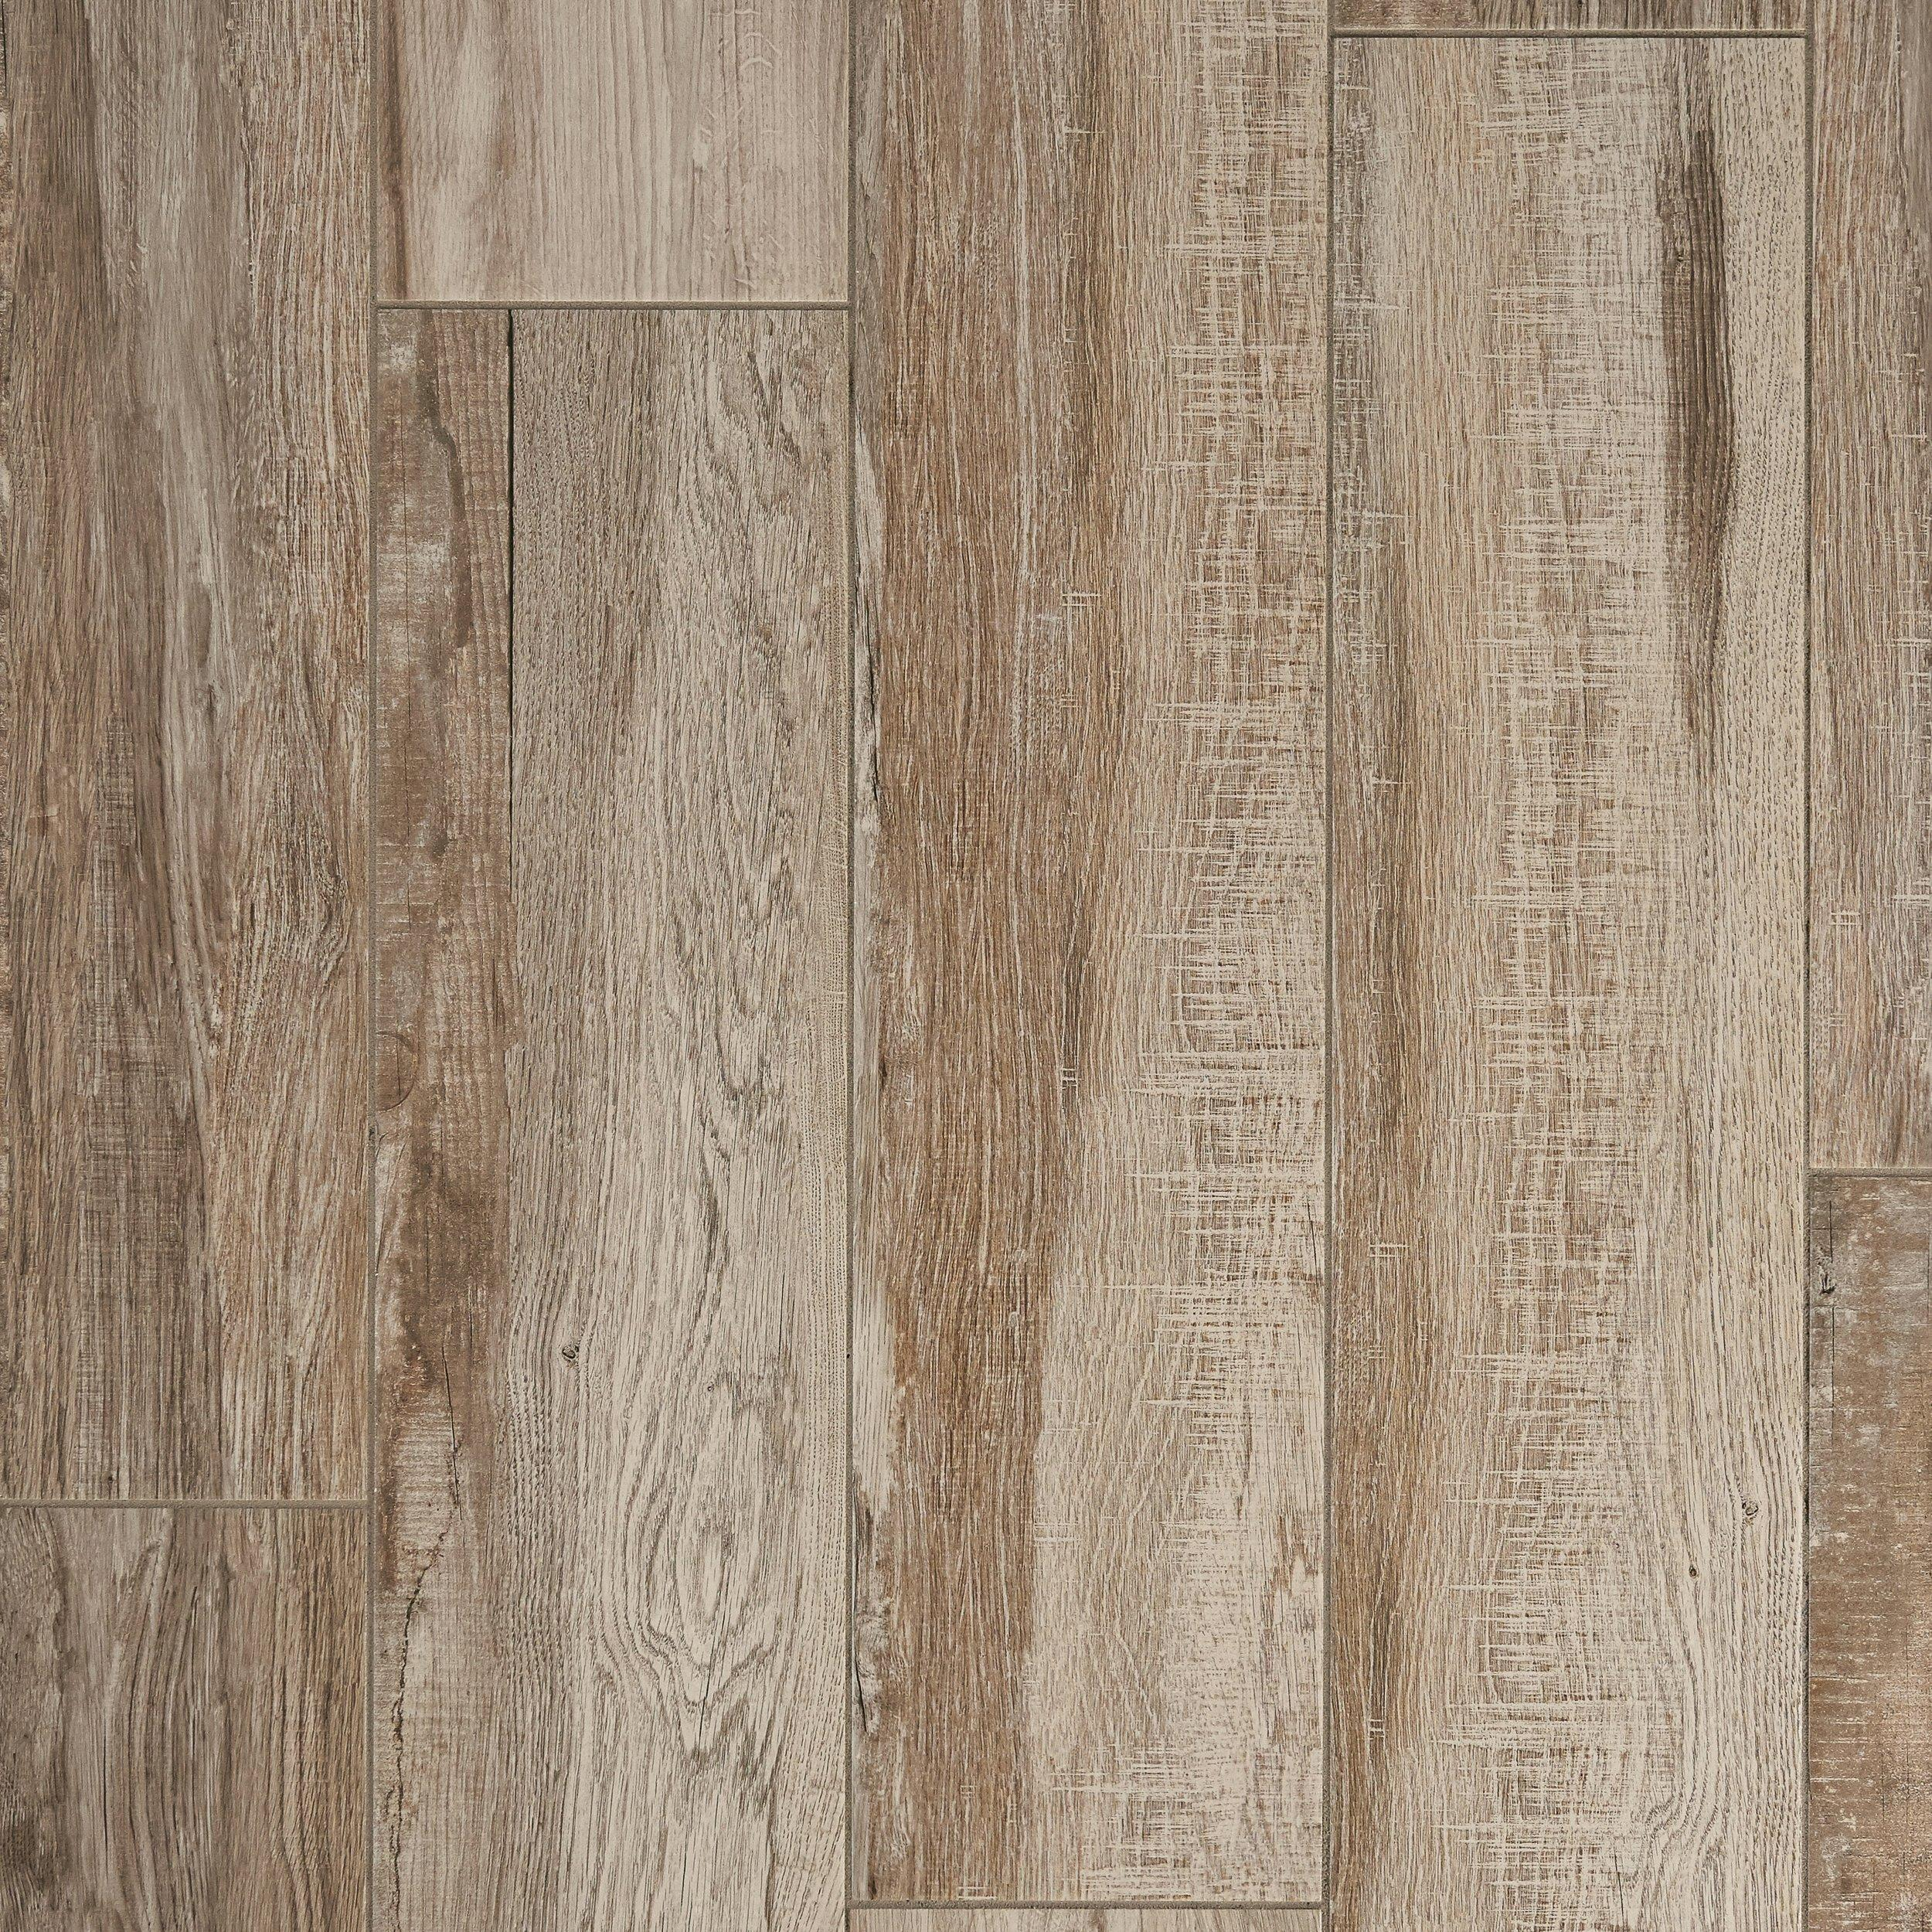 Ceramic tile new kent gray wood plank ceramic tile 8in x 40in 100213156 dailygadgetfo Image collections